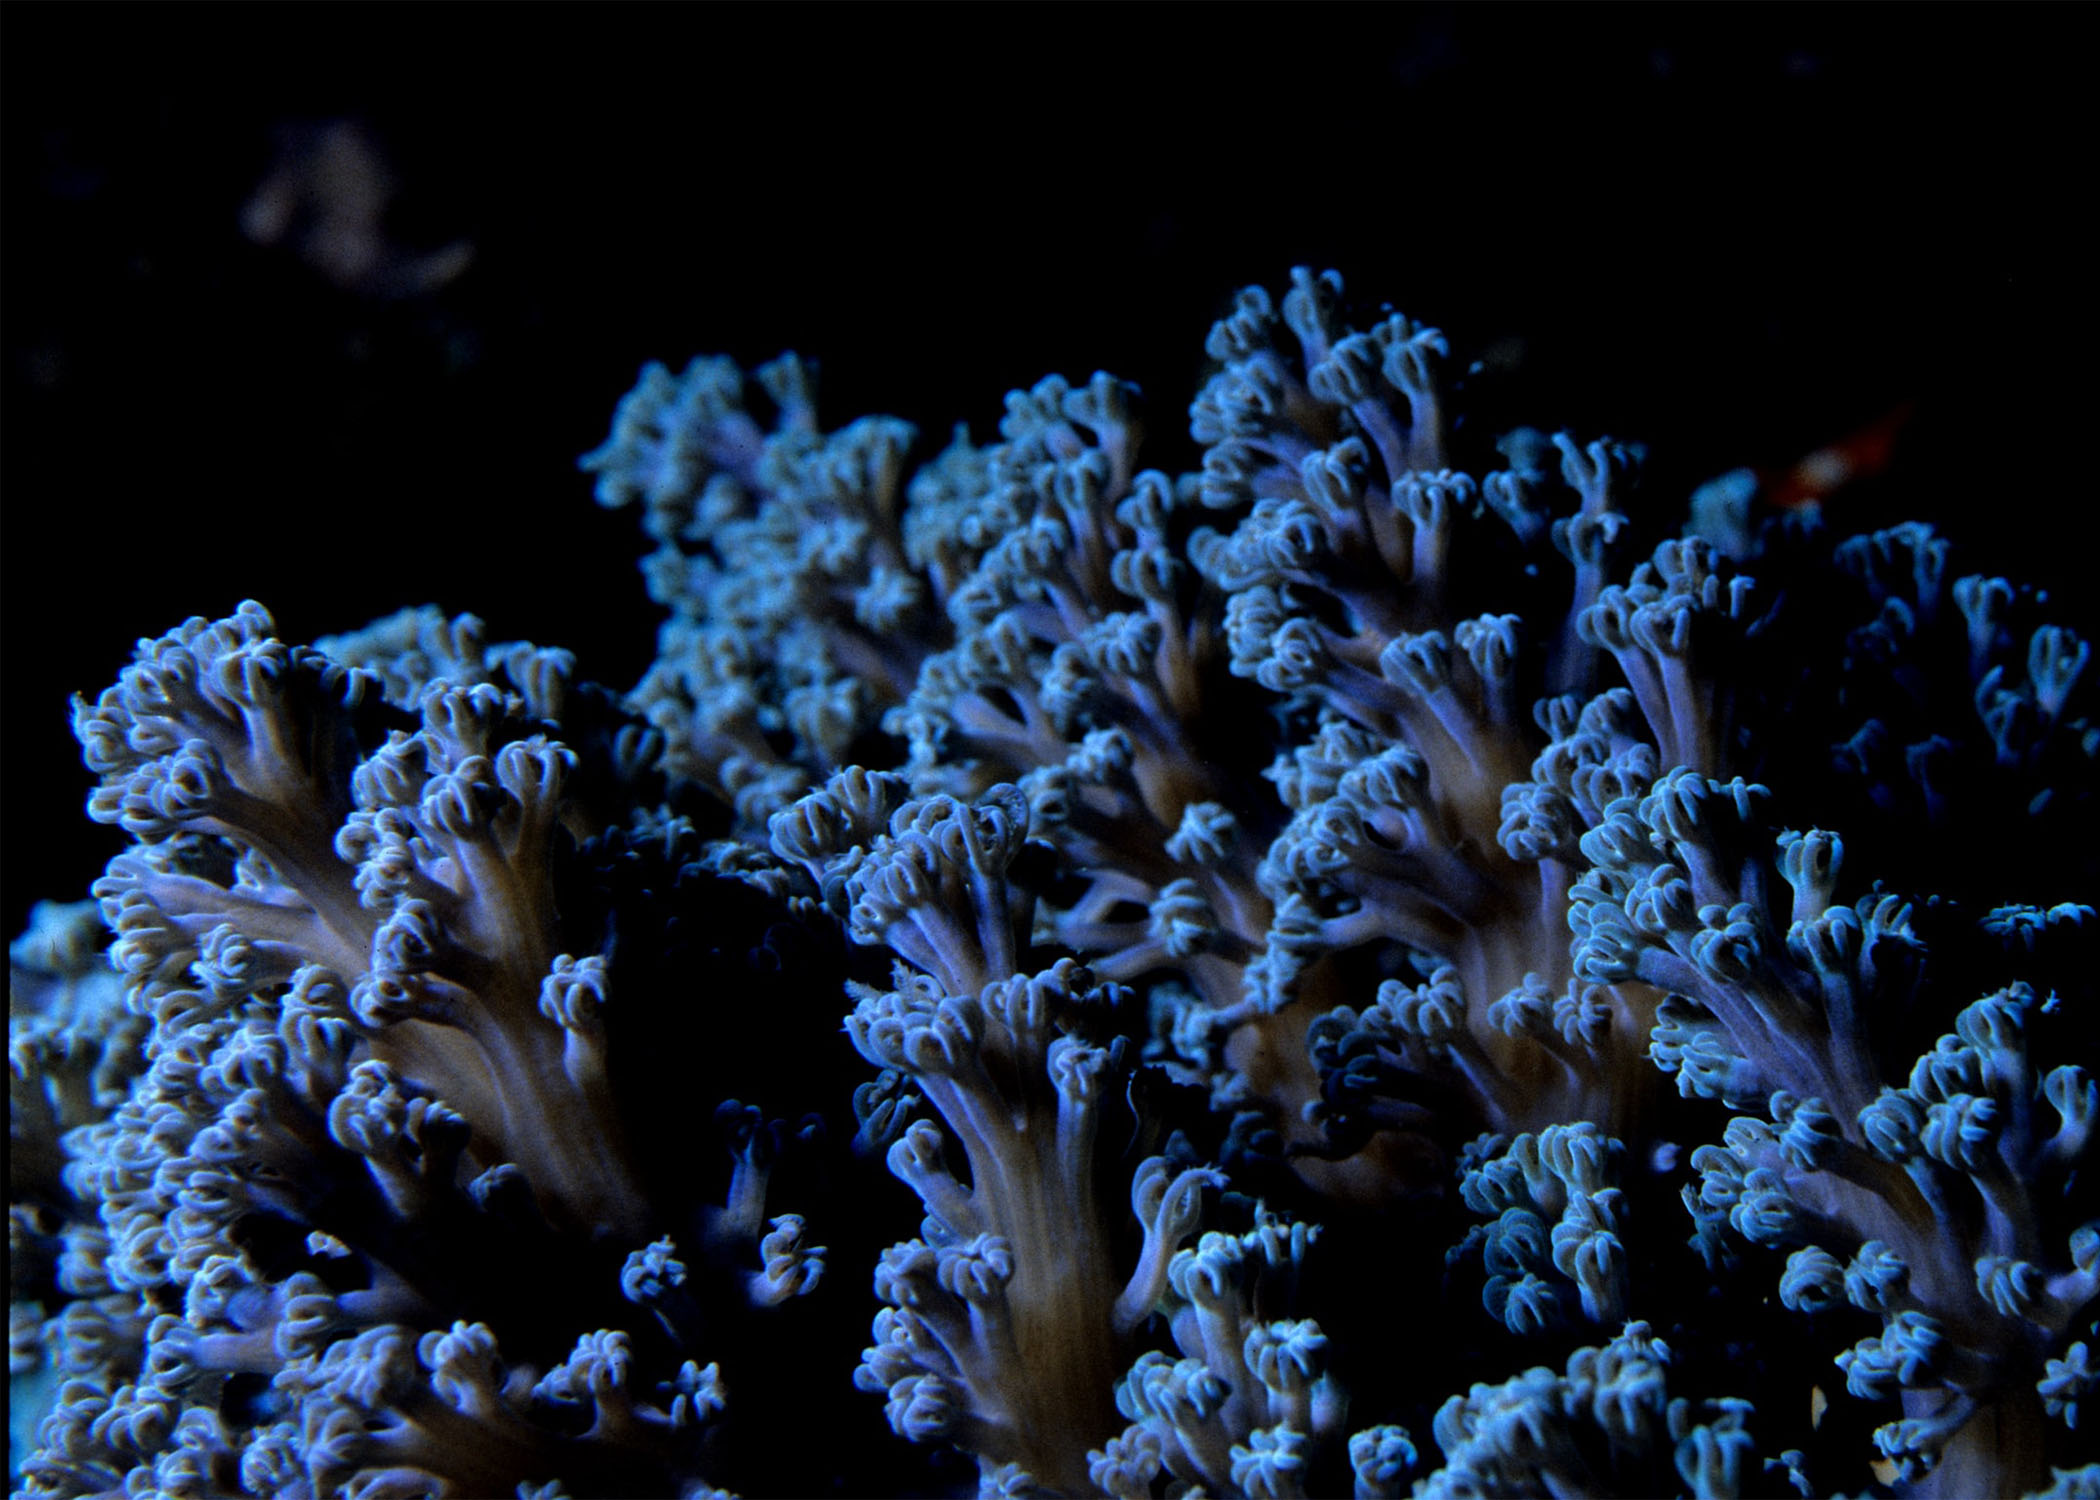 One Tree Reef. Cespitularia sp soft coral.